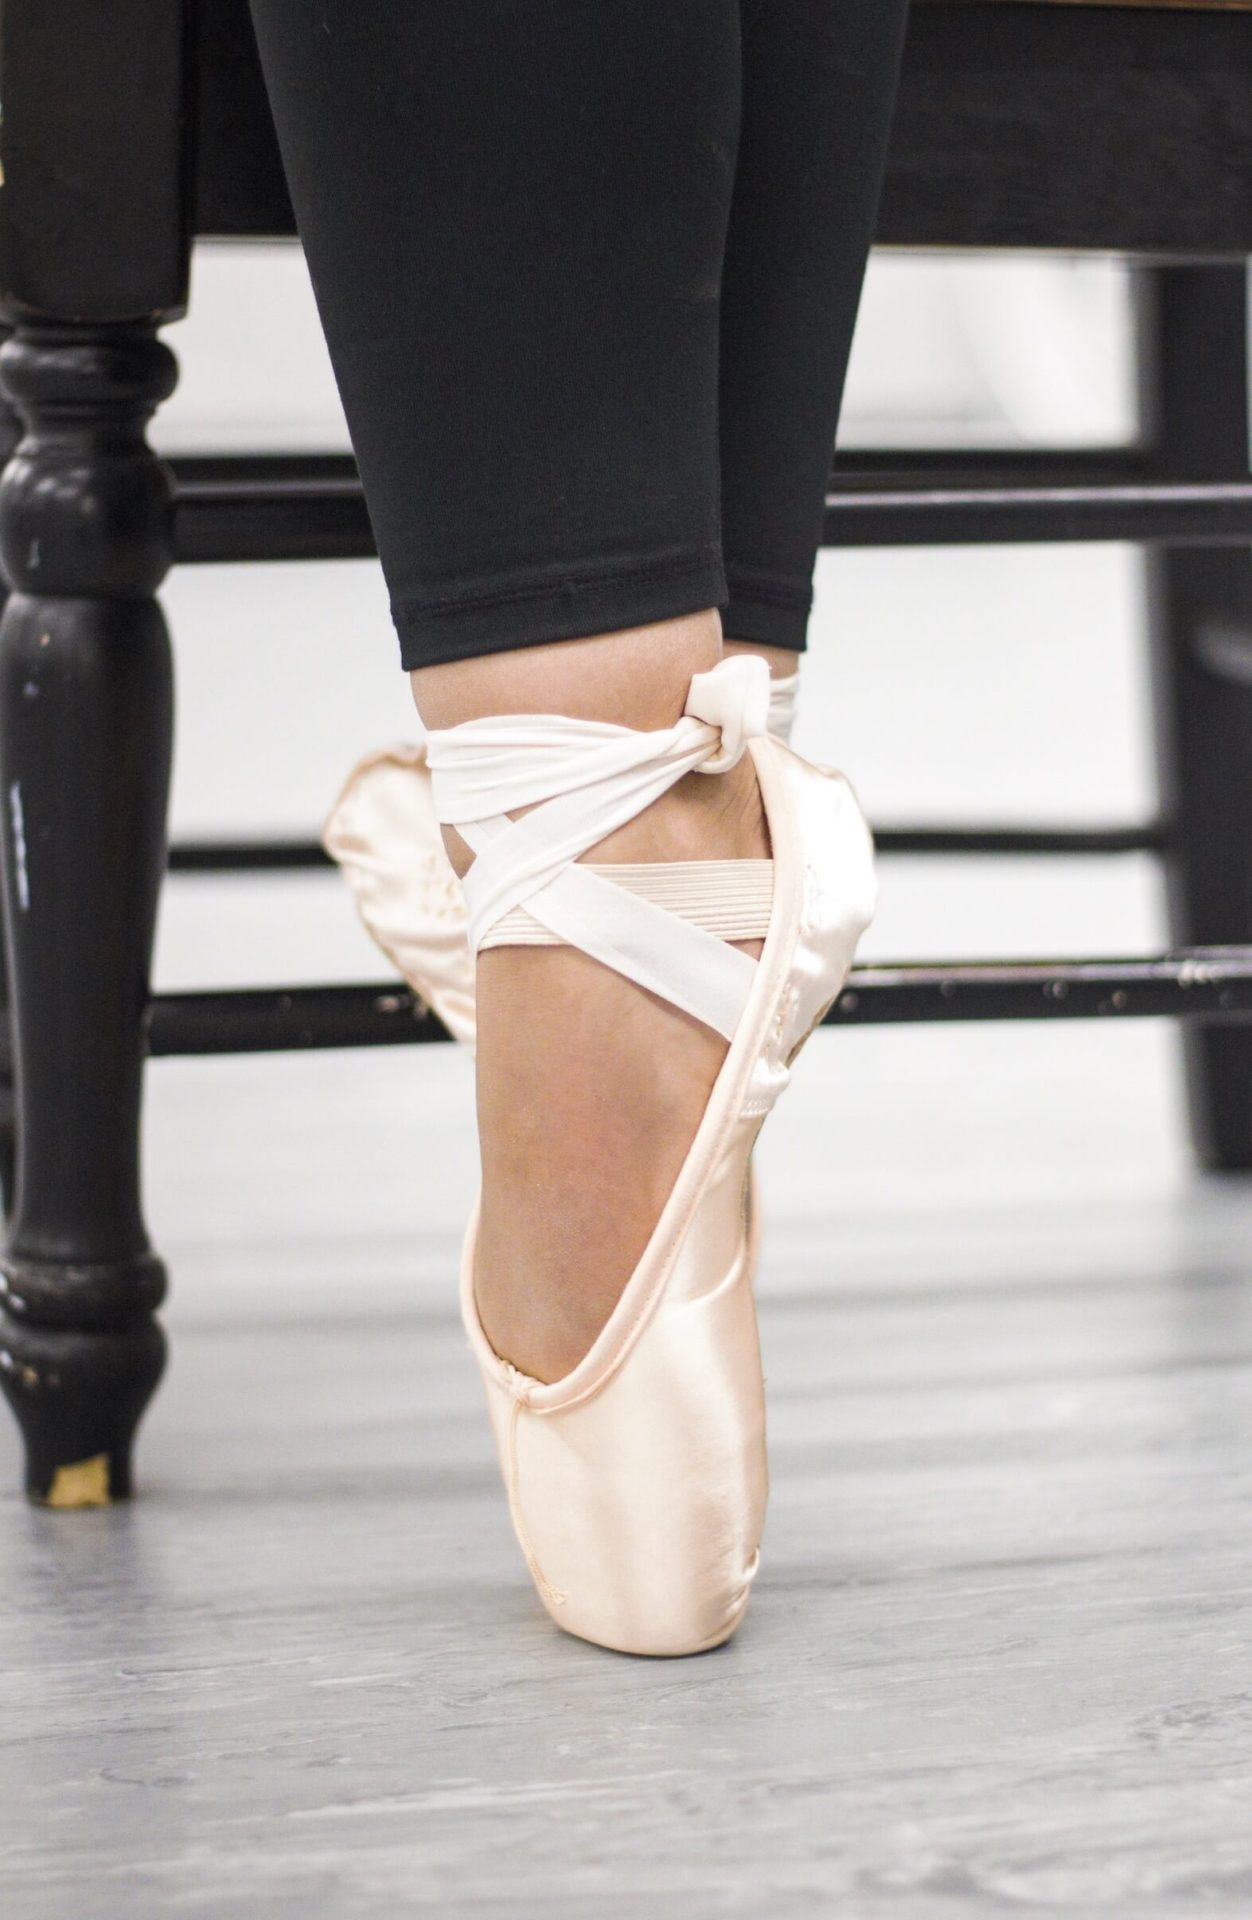 photo of a ballerina on pointe